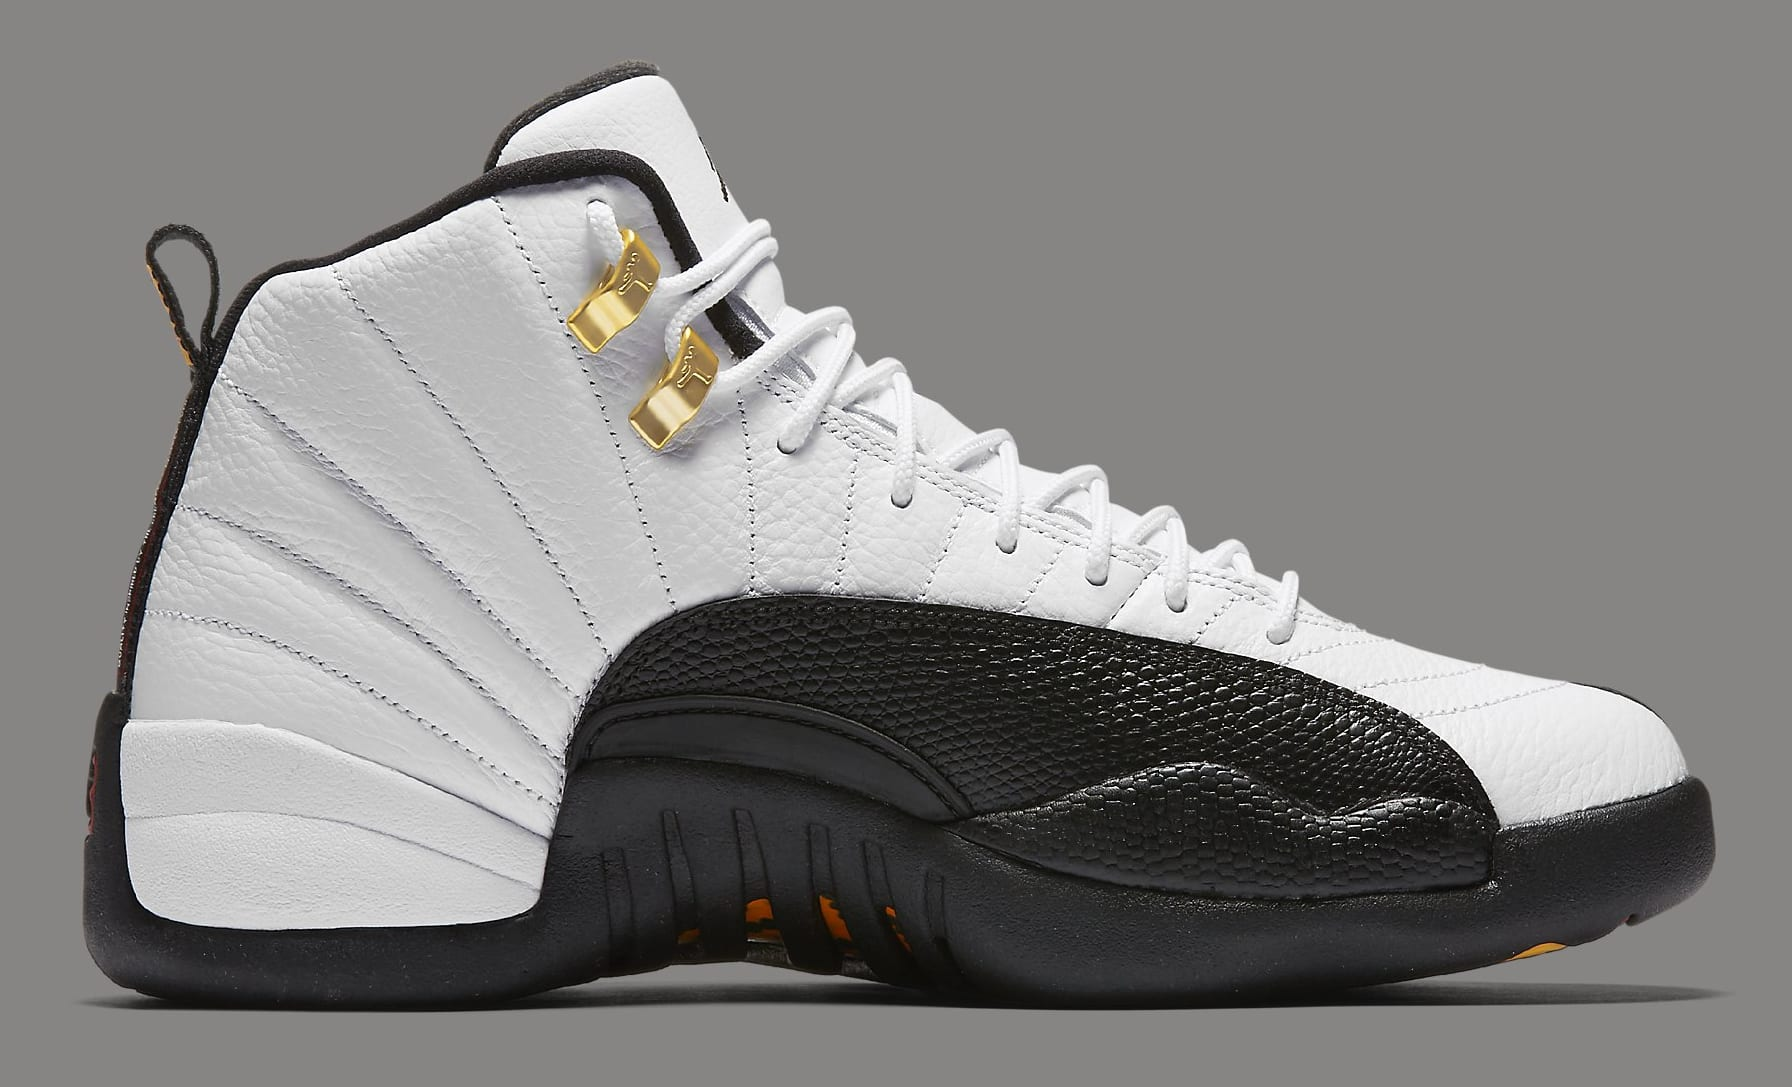 buy online 4cb79 349fc amazon air jordan 12 retro taxi 17a05 4a866  ireland image via nike air  jordan 12 taxi 130690 125 medial 47aa5 c36f3